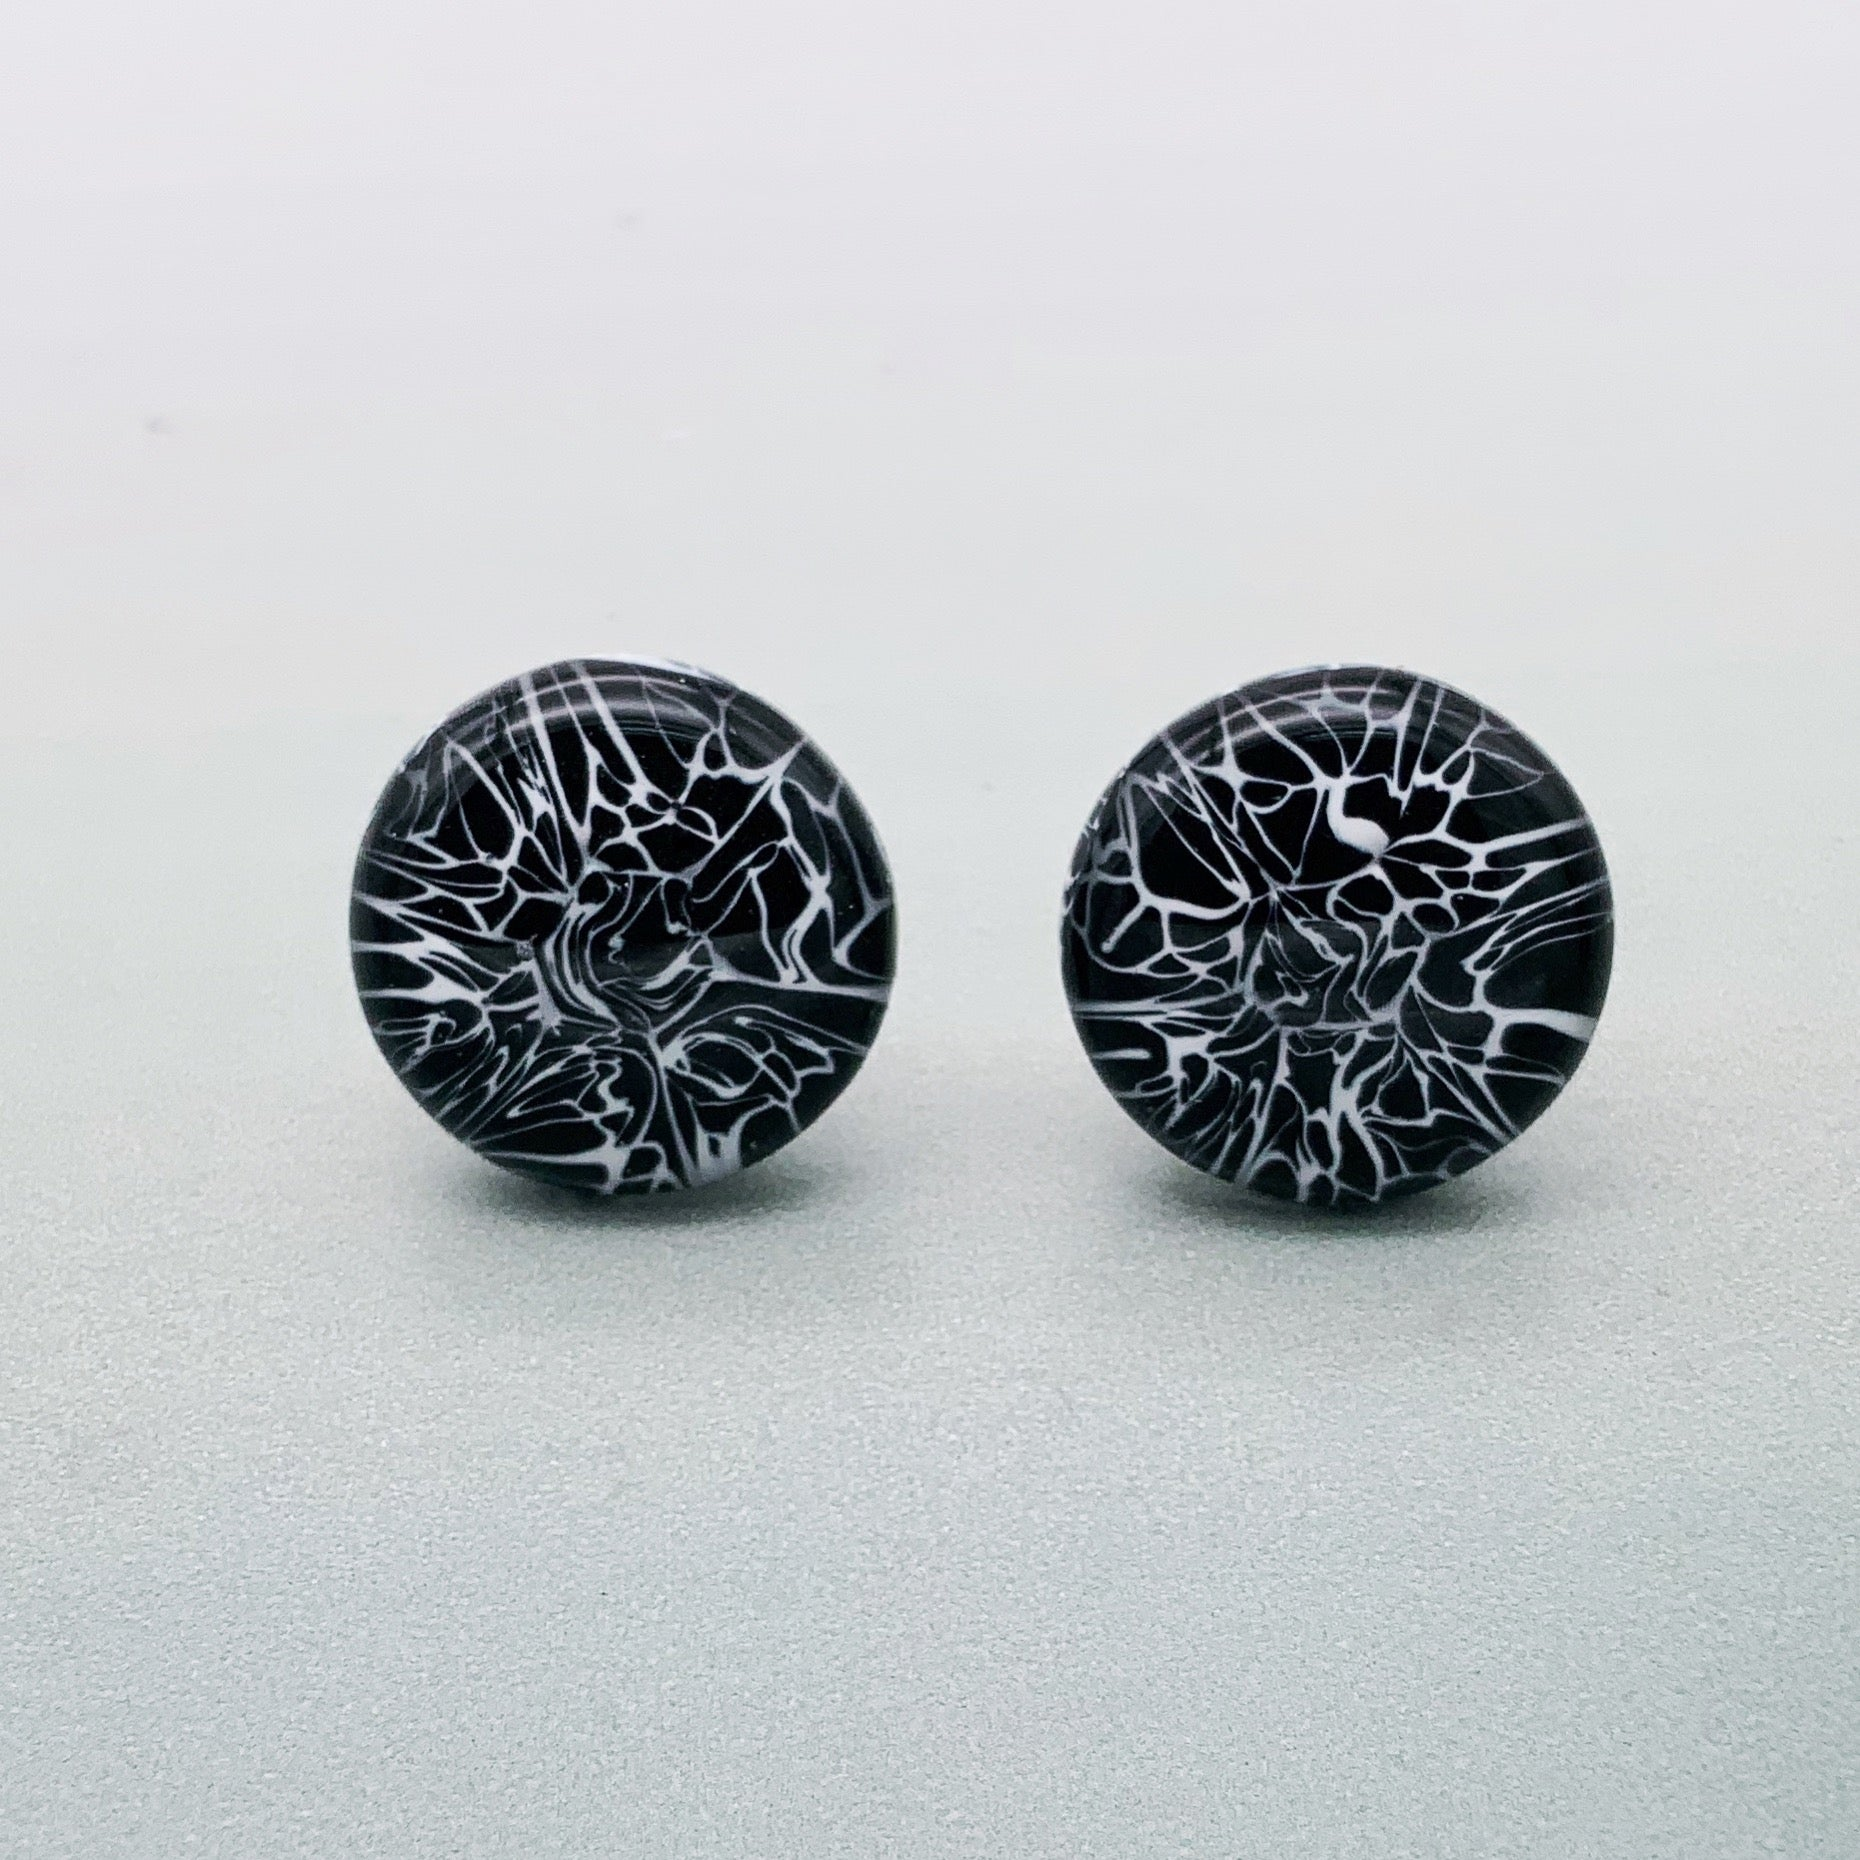 Black and white marmo glass cufflinks